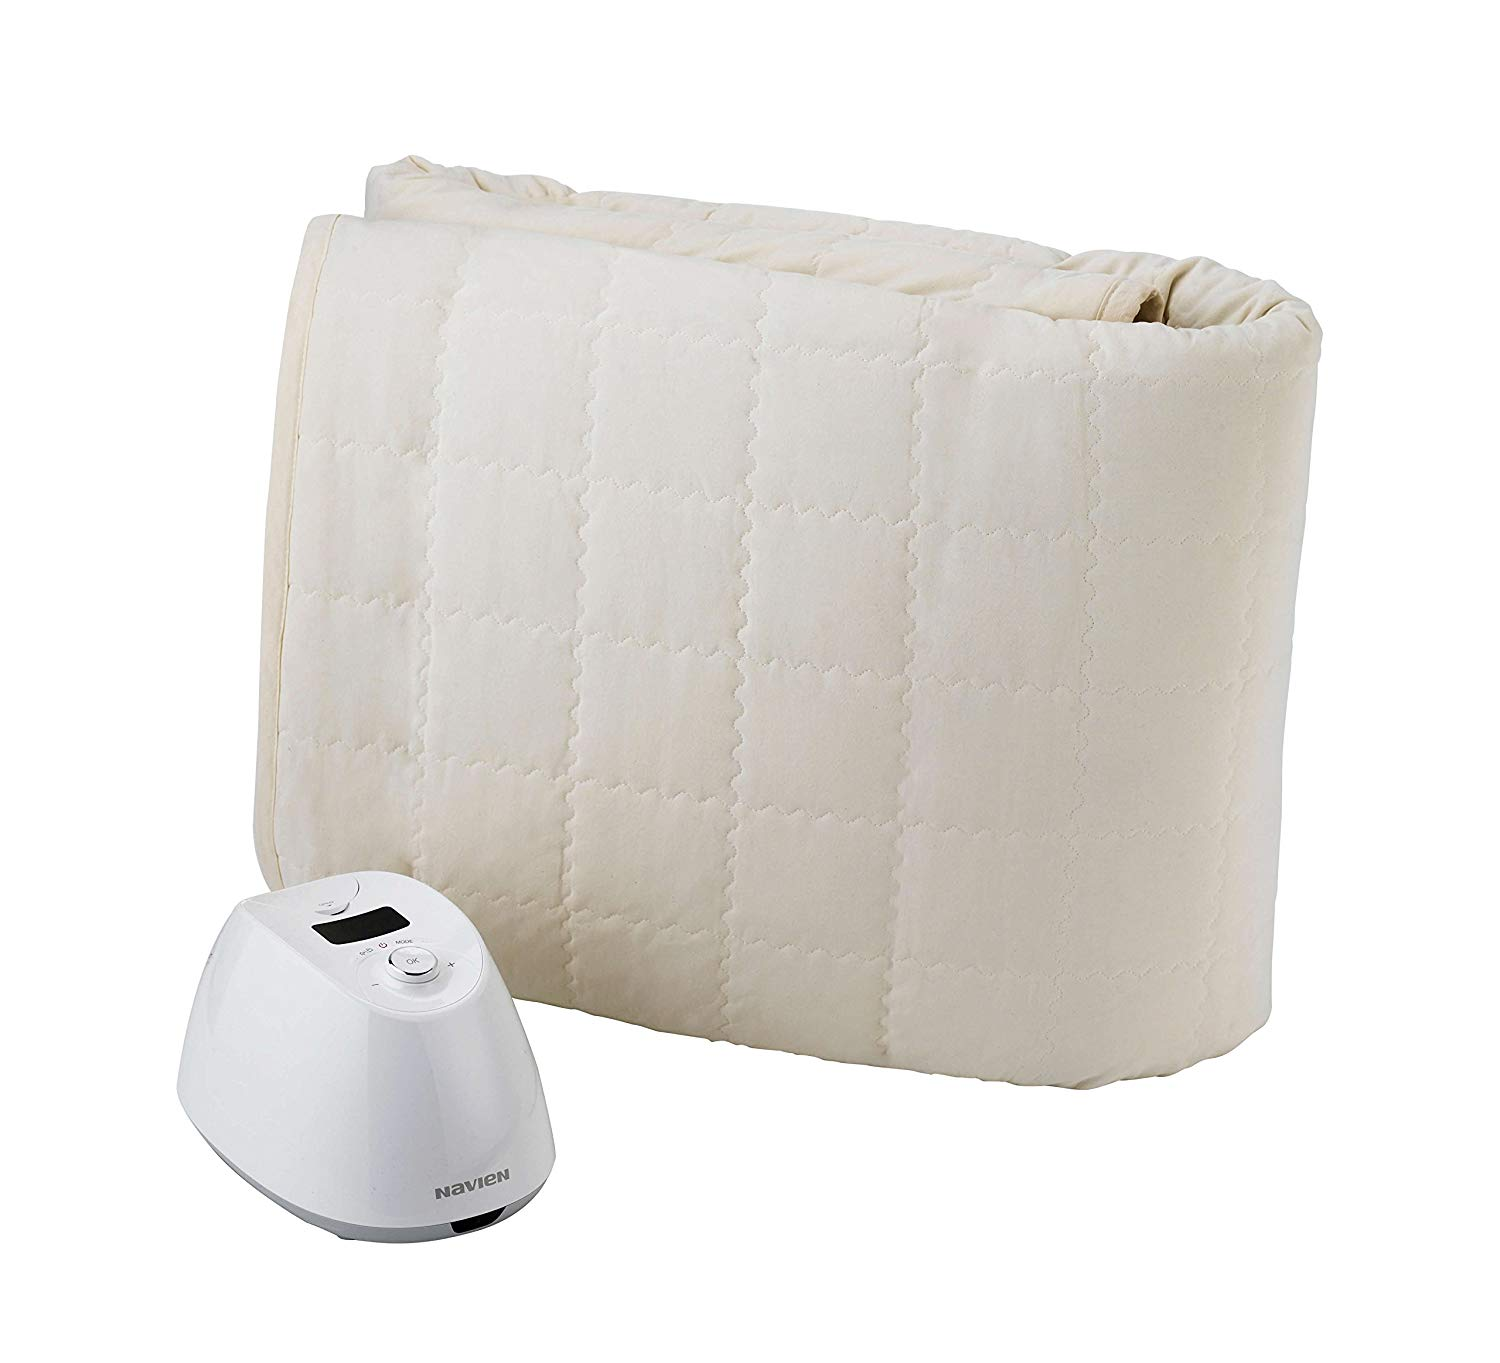 KD Navien Best Electric Blanket Review by www.snoremagazine.com